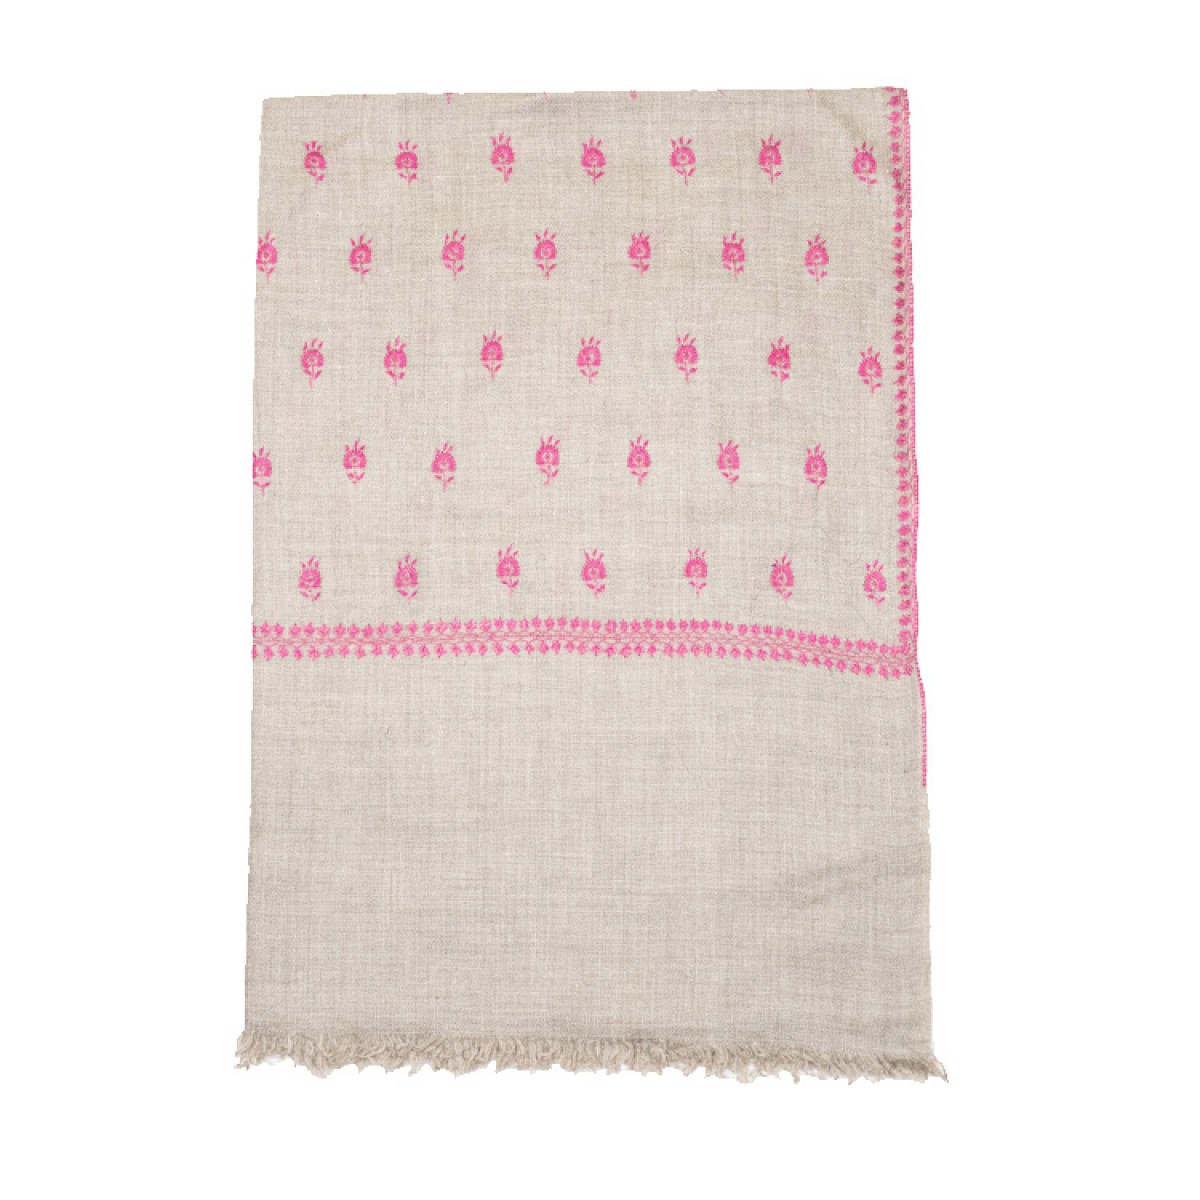 Embroidered Pashmina Stole - Natural & Magenta